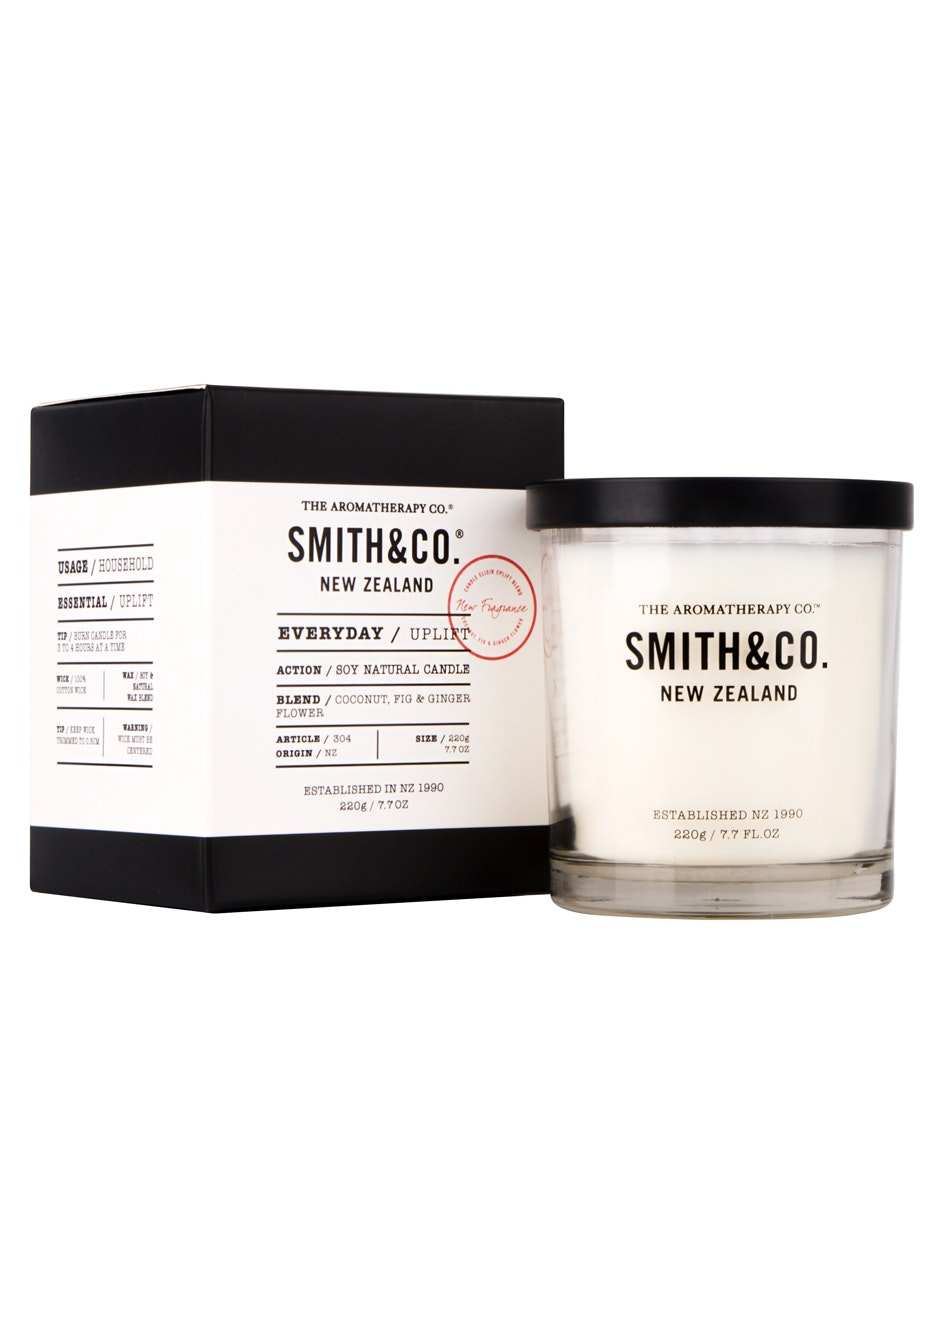 The Aromatherapy Co. Smith & Co. Candle - Uplift - 220g